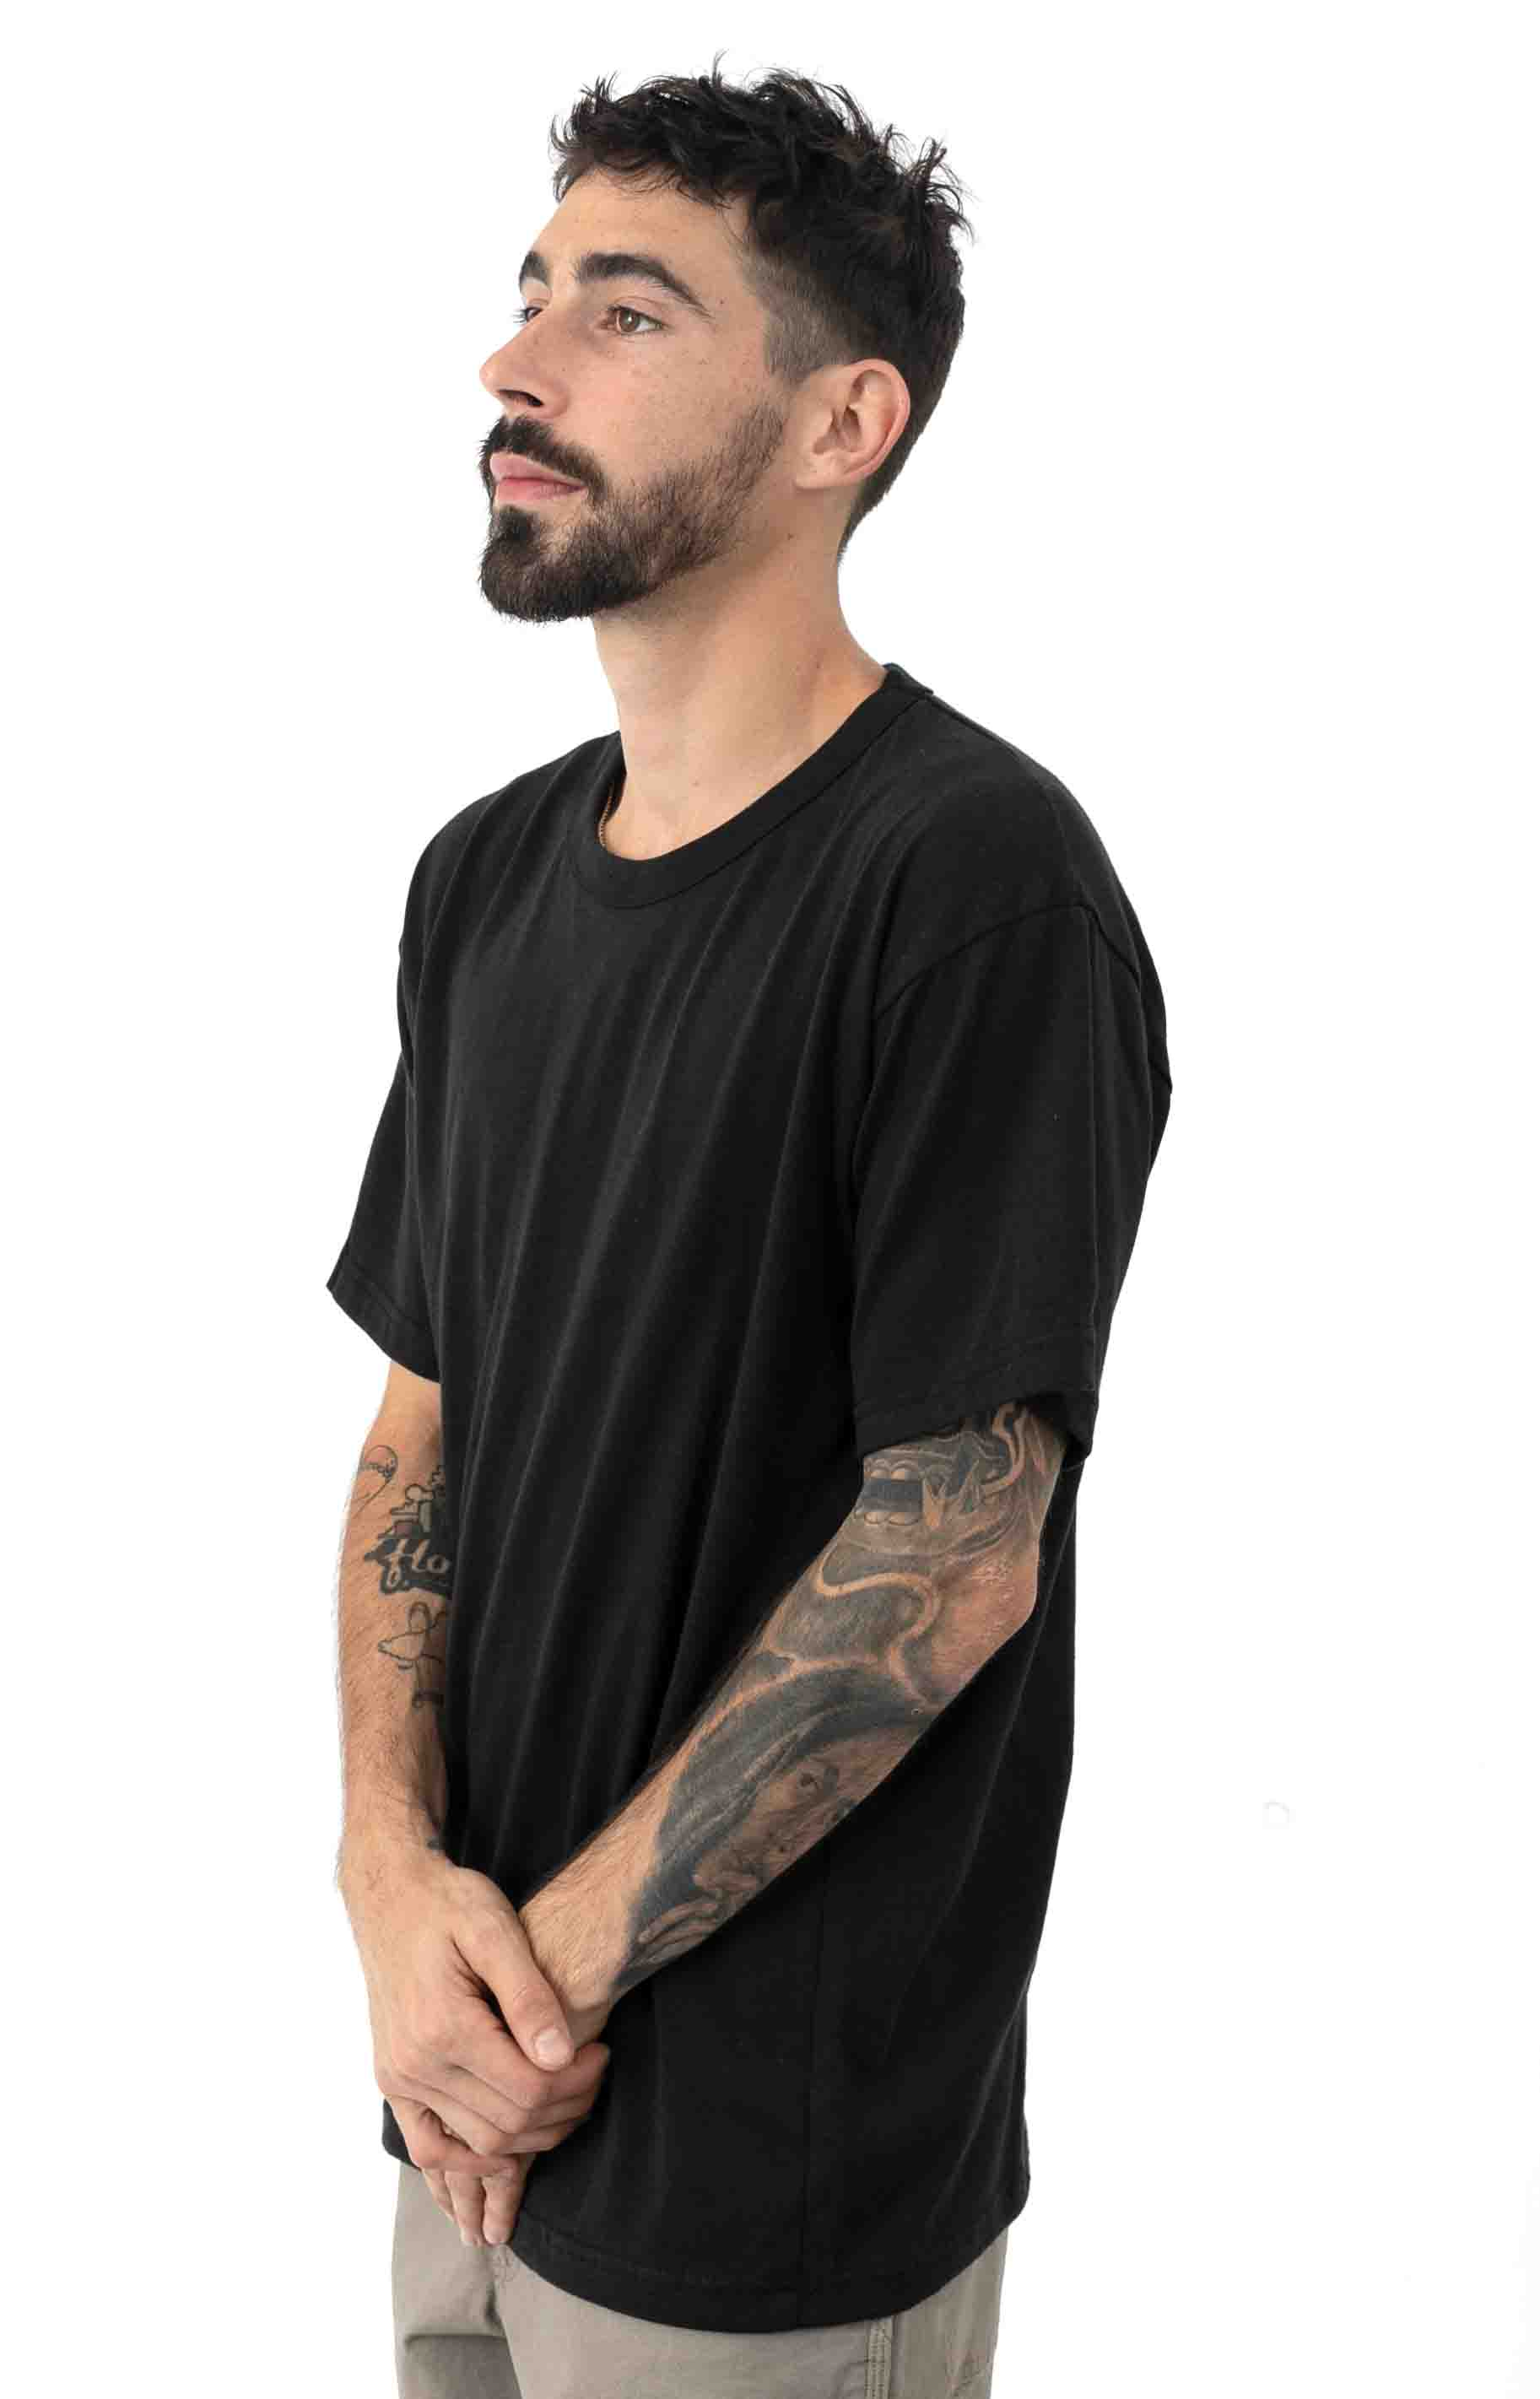 (6670) Solid Color Cotton / Polyester Blend Military T-Shirt - Black  2